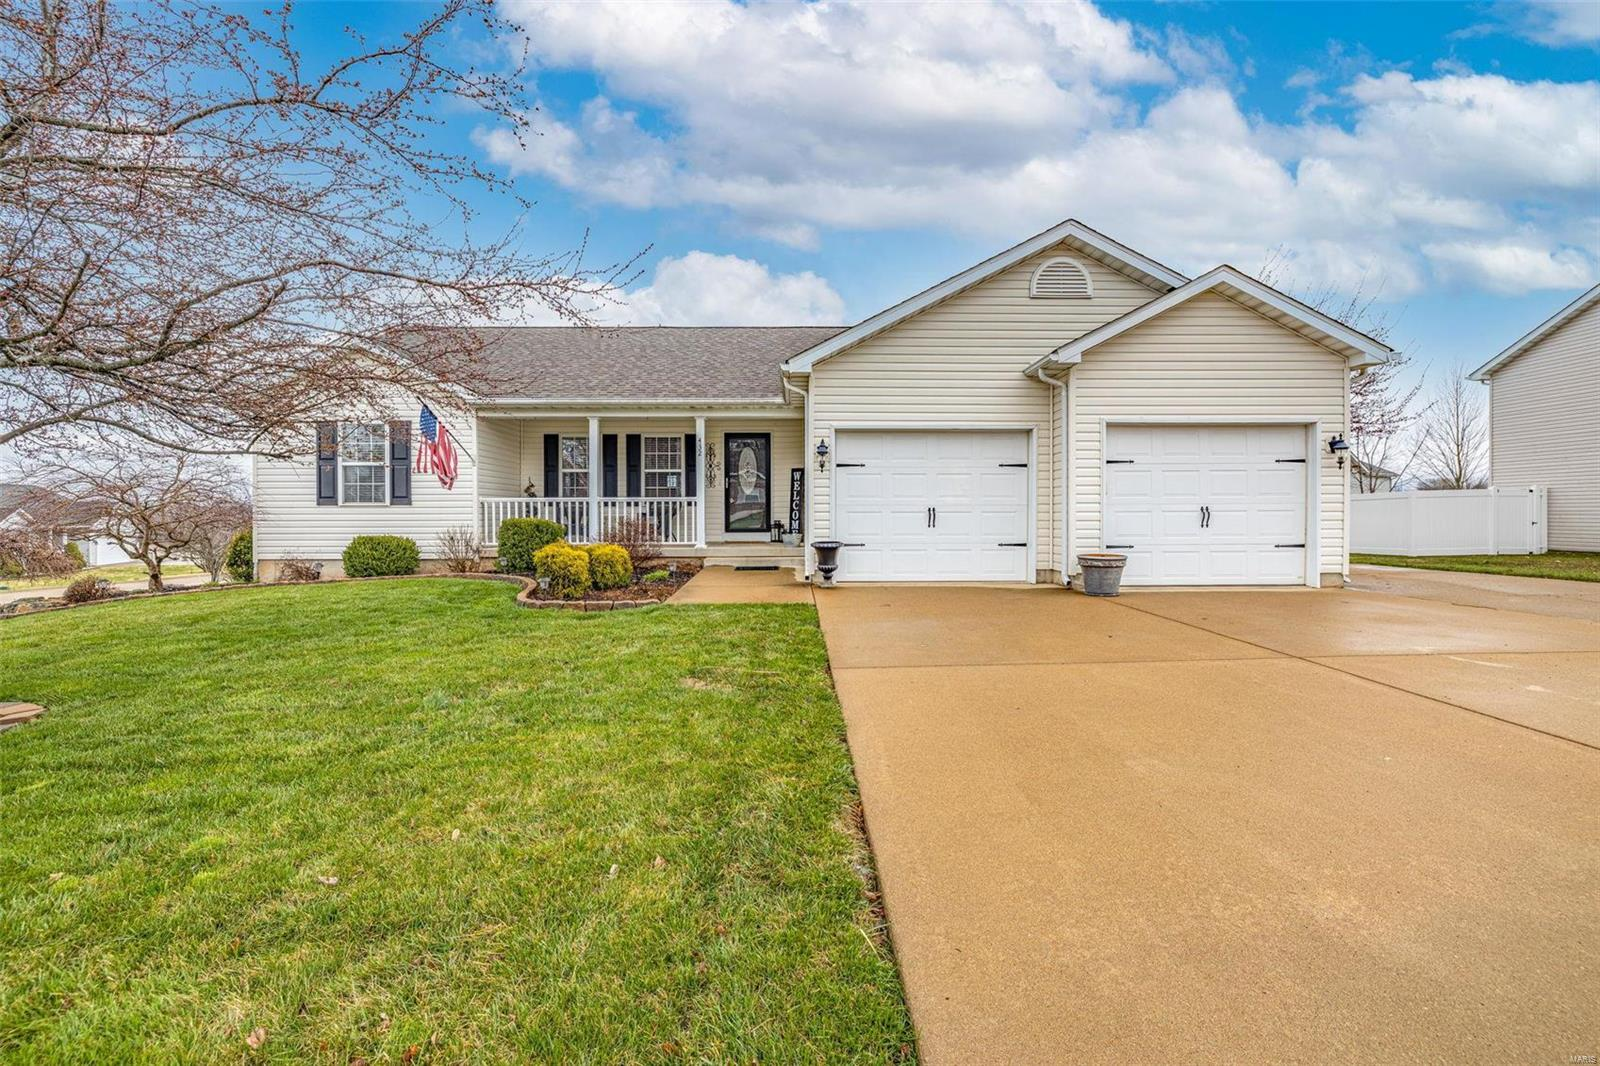 432 Ridgeview Dr Property Photo - Desloge, MO real estate listing